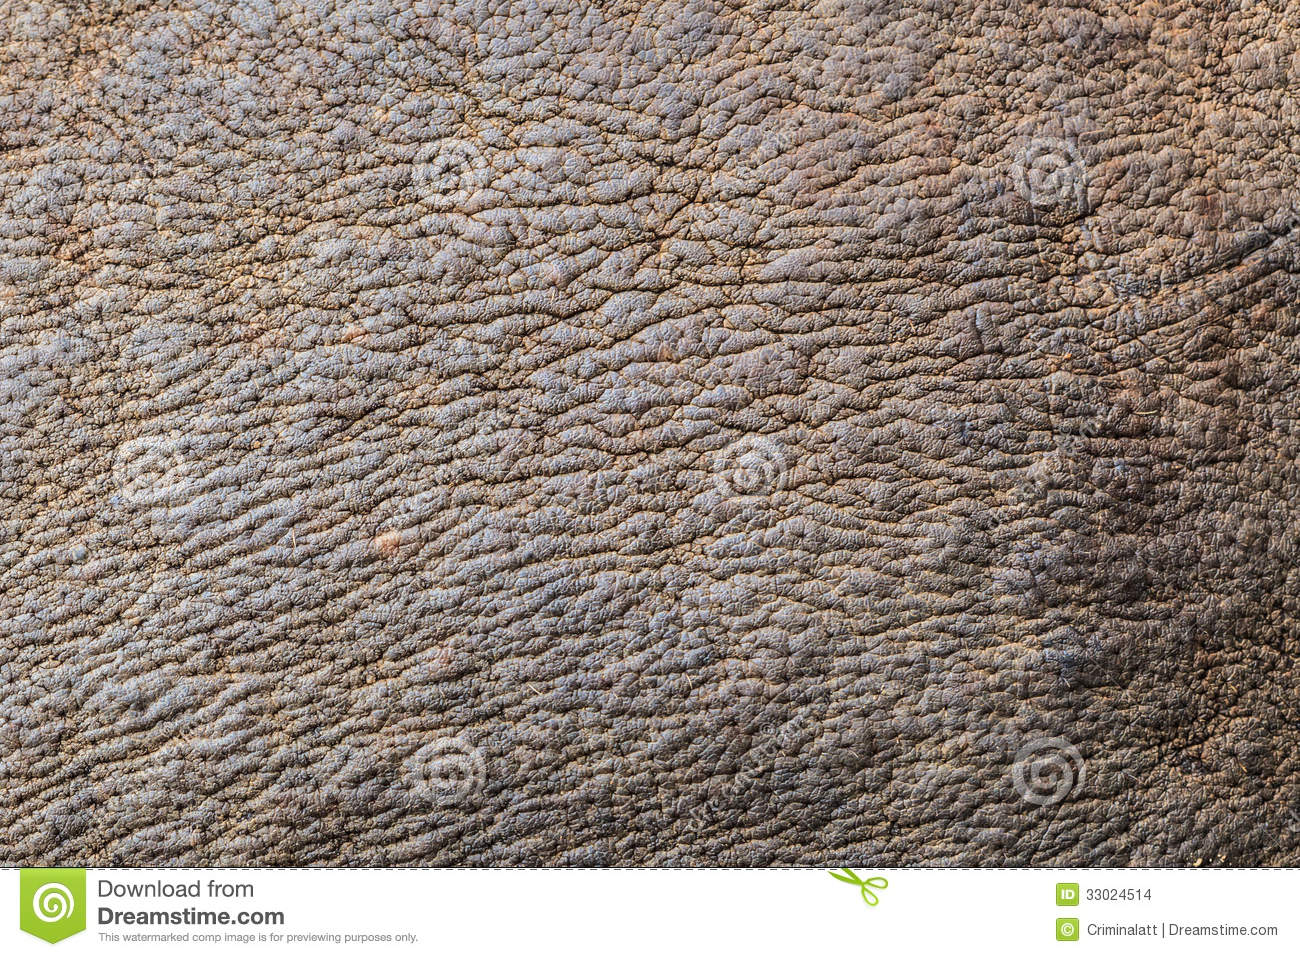 Rhino skin stock photo. Image of animal, rough, rhinoceros ...